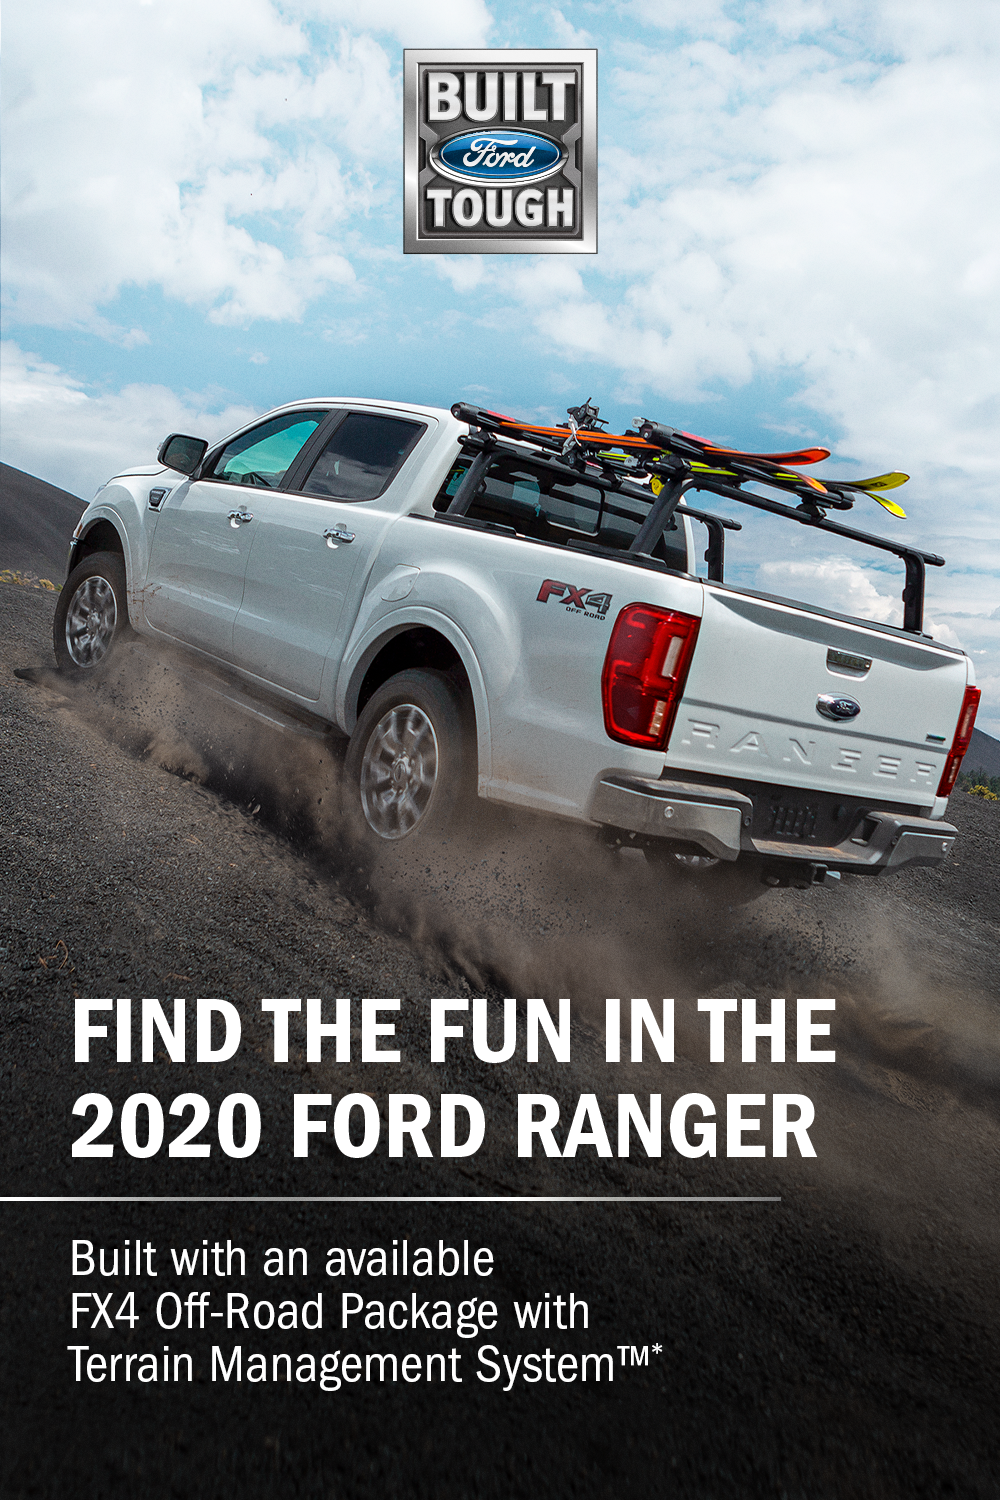 Lead The Way In The 2020 Ford Ranger Pickup Truck Towing Ford Ranger 2020 Ford Ranger